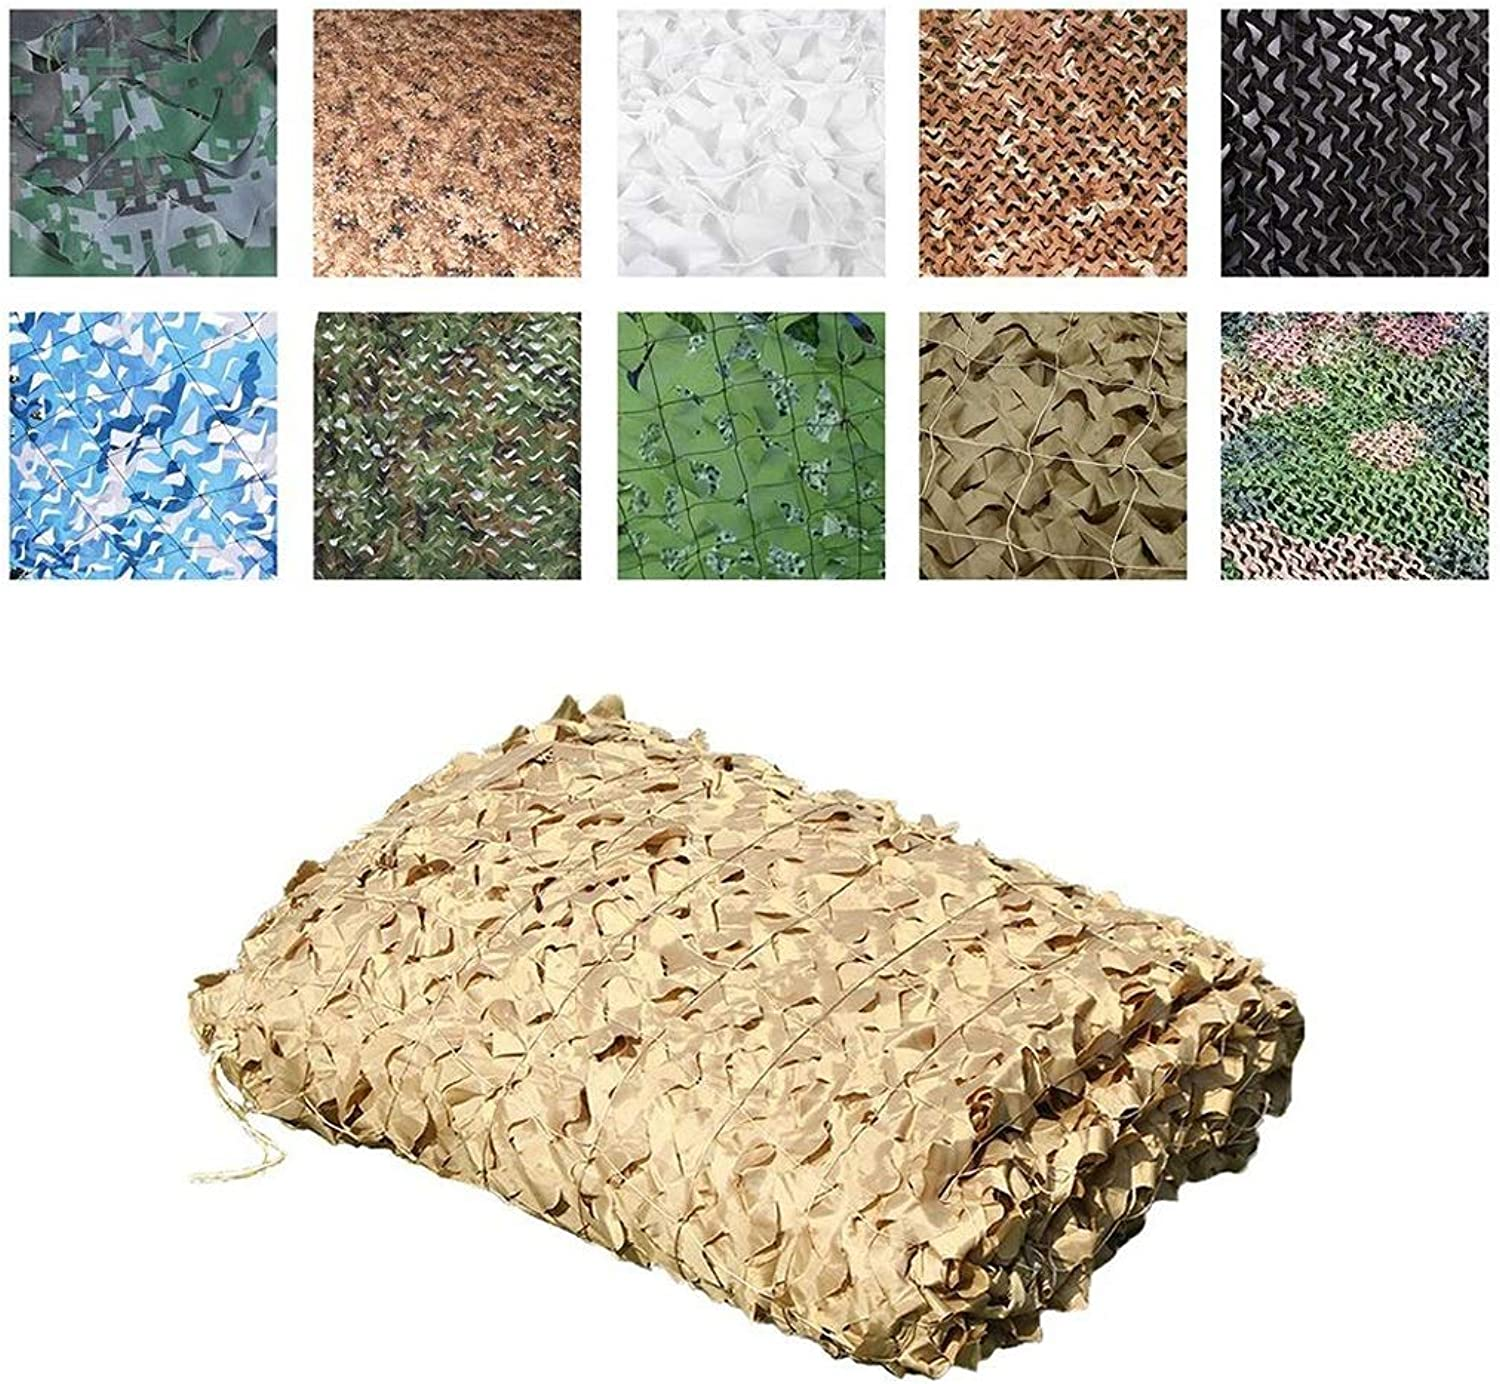 Camouflage Net Camouflage Camouflage Sunscreen Sunscreen Net, Military Troops Suitable for The Army Hide in The Hunting Photography Wildlife Photography Training Camp Hidden Shooting Multiple Sizes